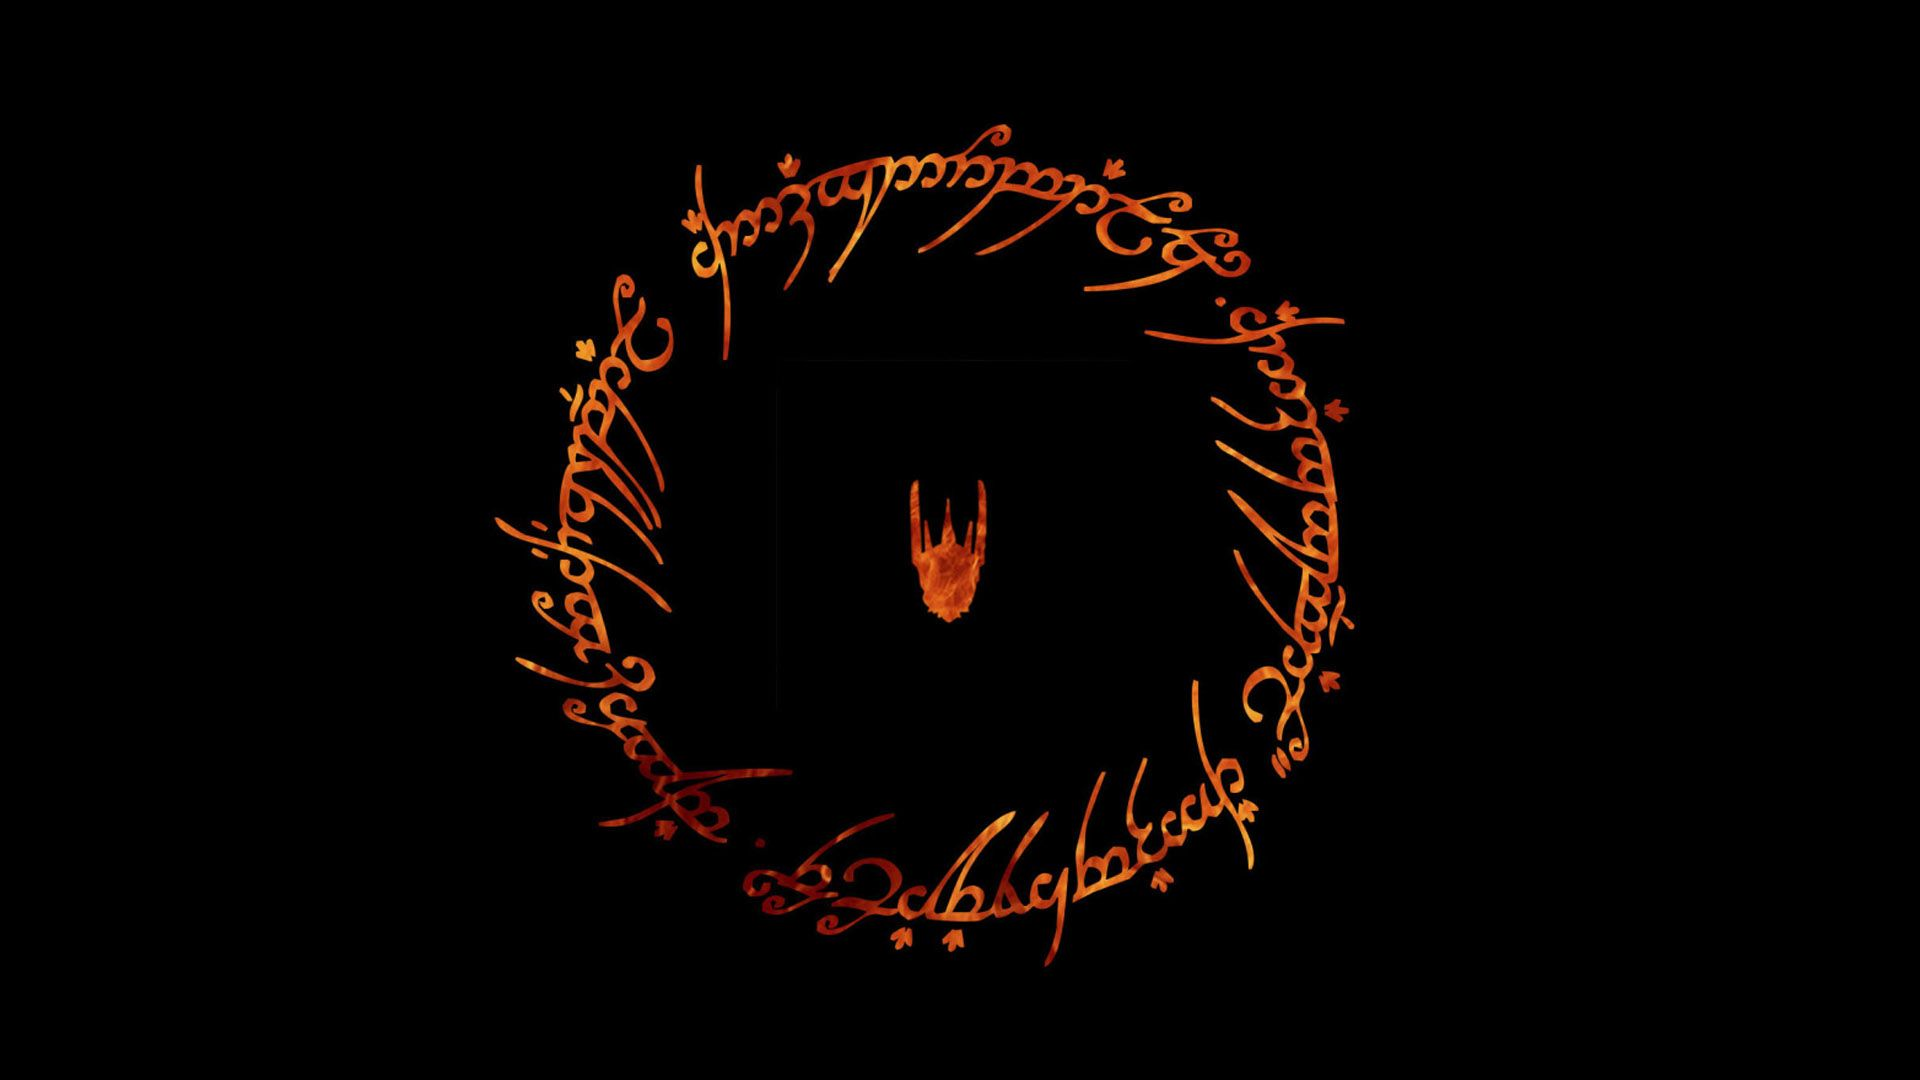 Lotr Book Wallpapers Top Free Lotr Book Backgrounds